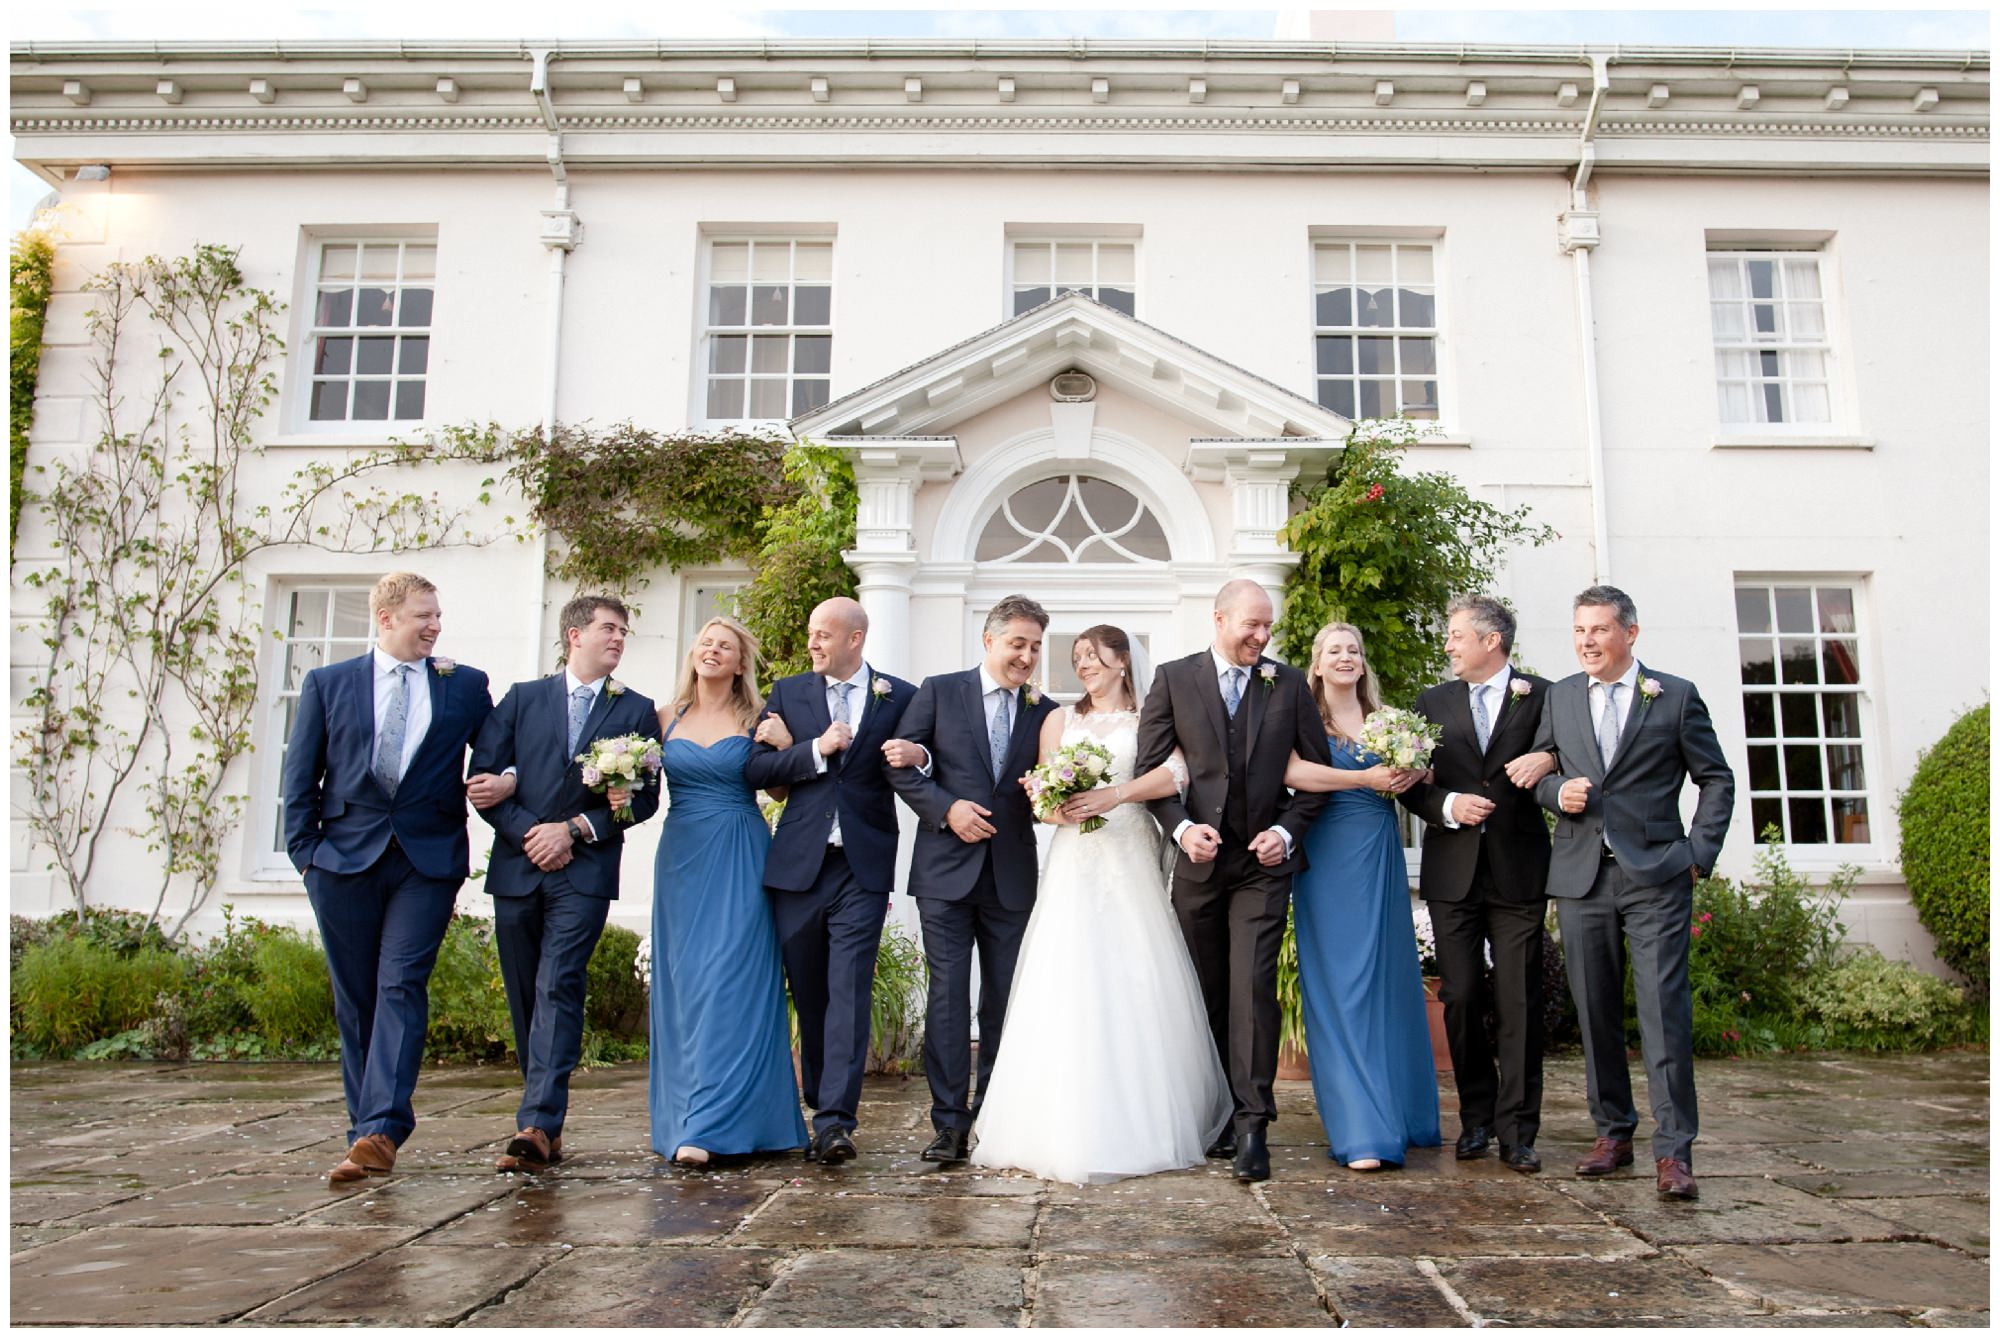 Wedding Group Photography in Hampshire